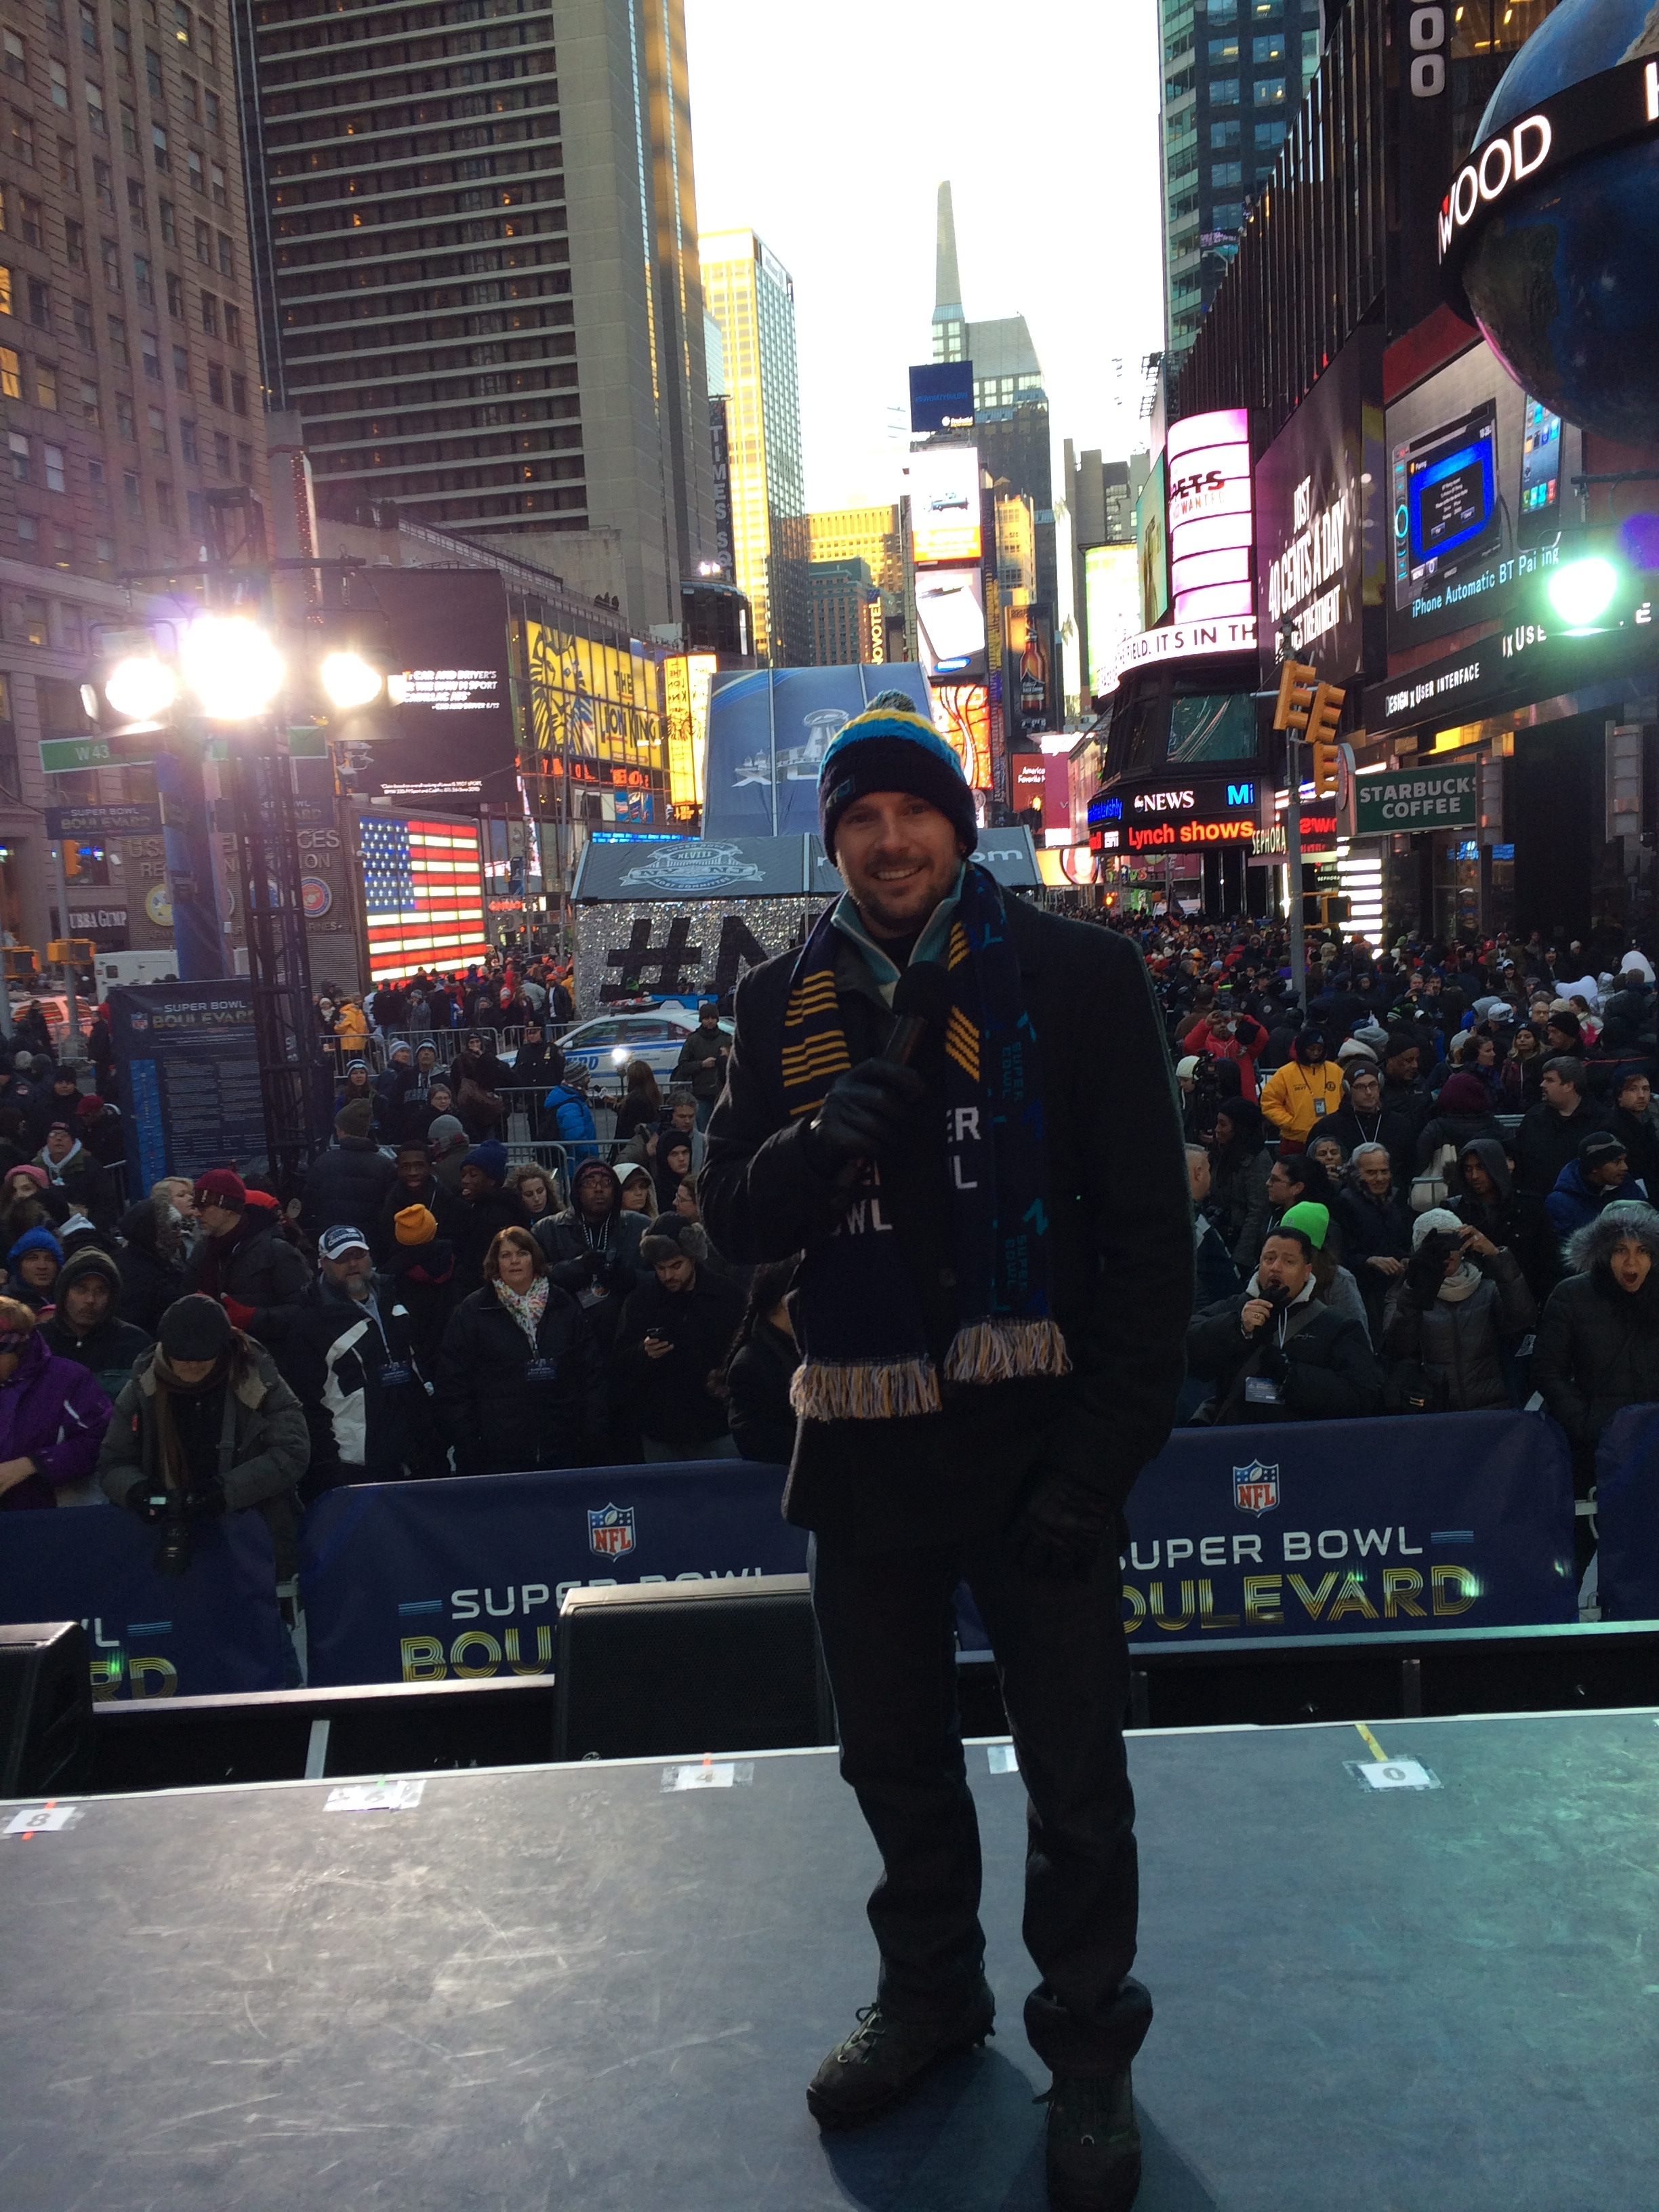 Super Bowl - Times Square